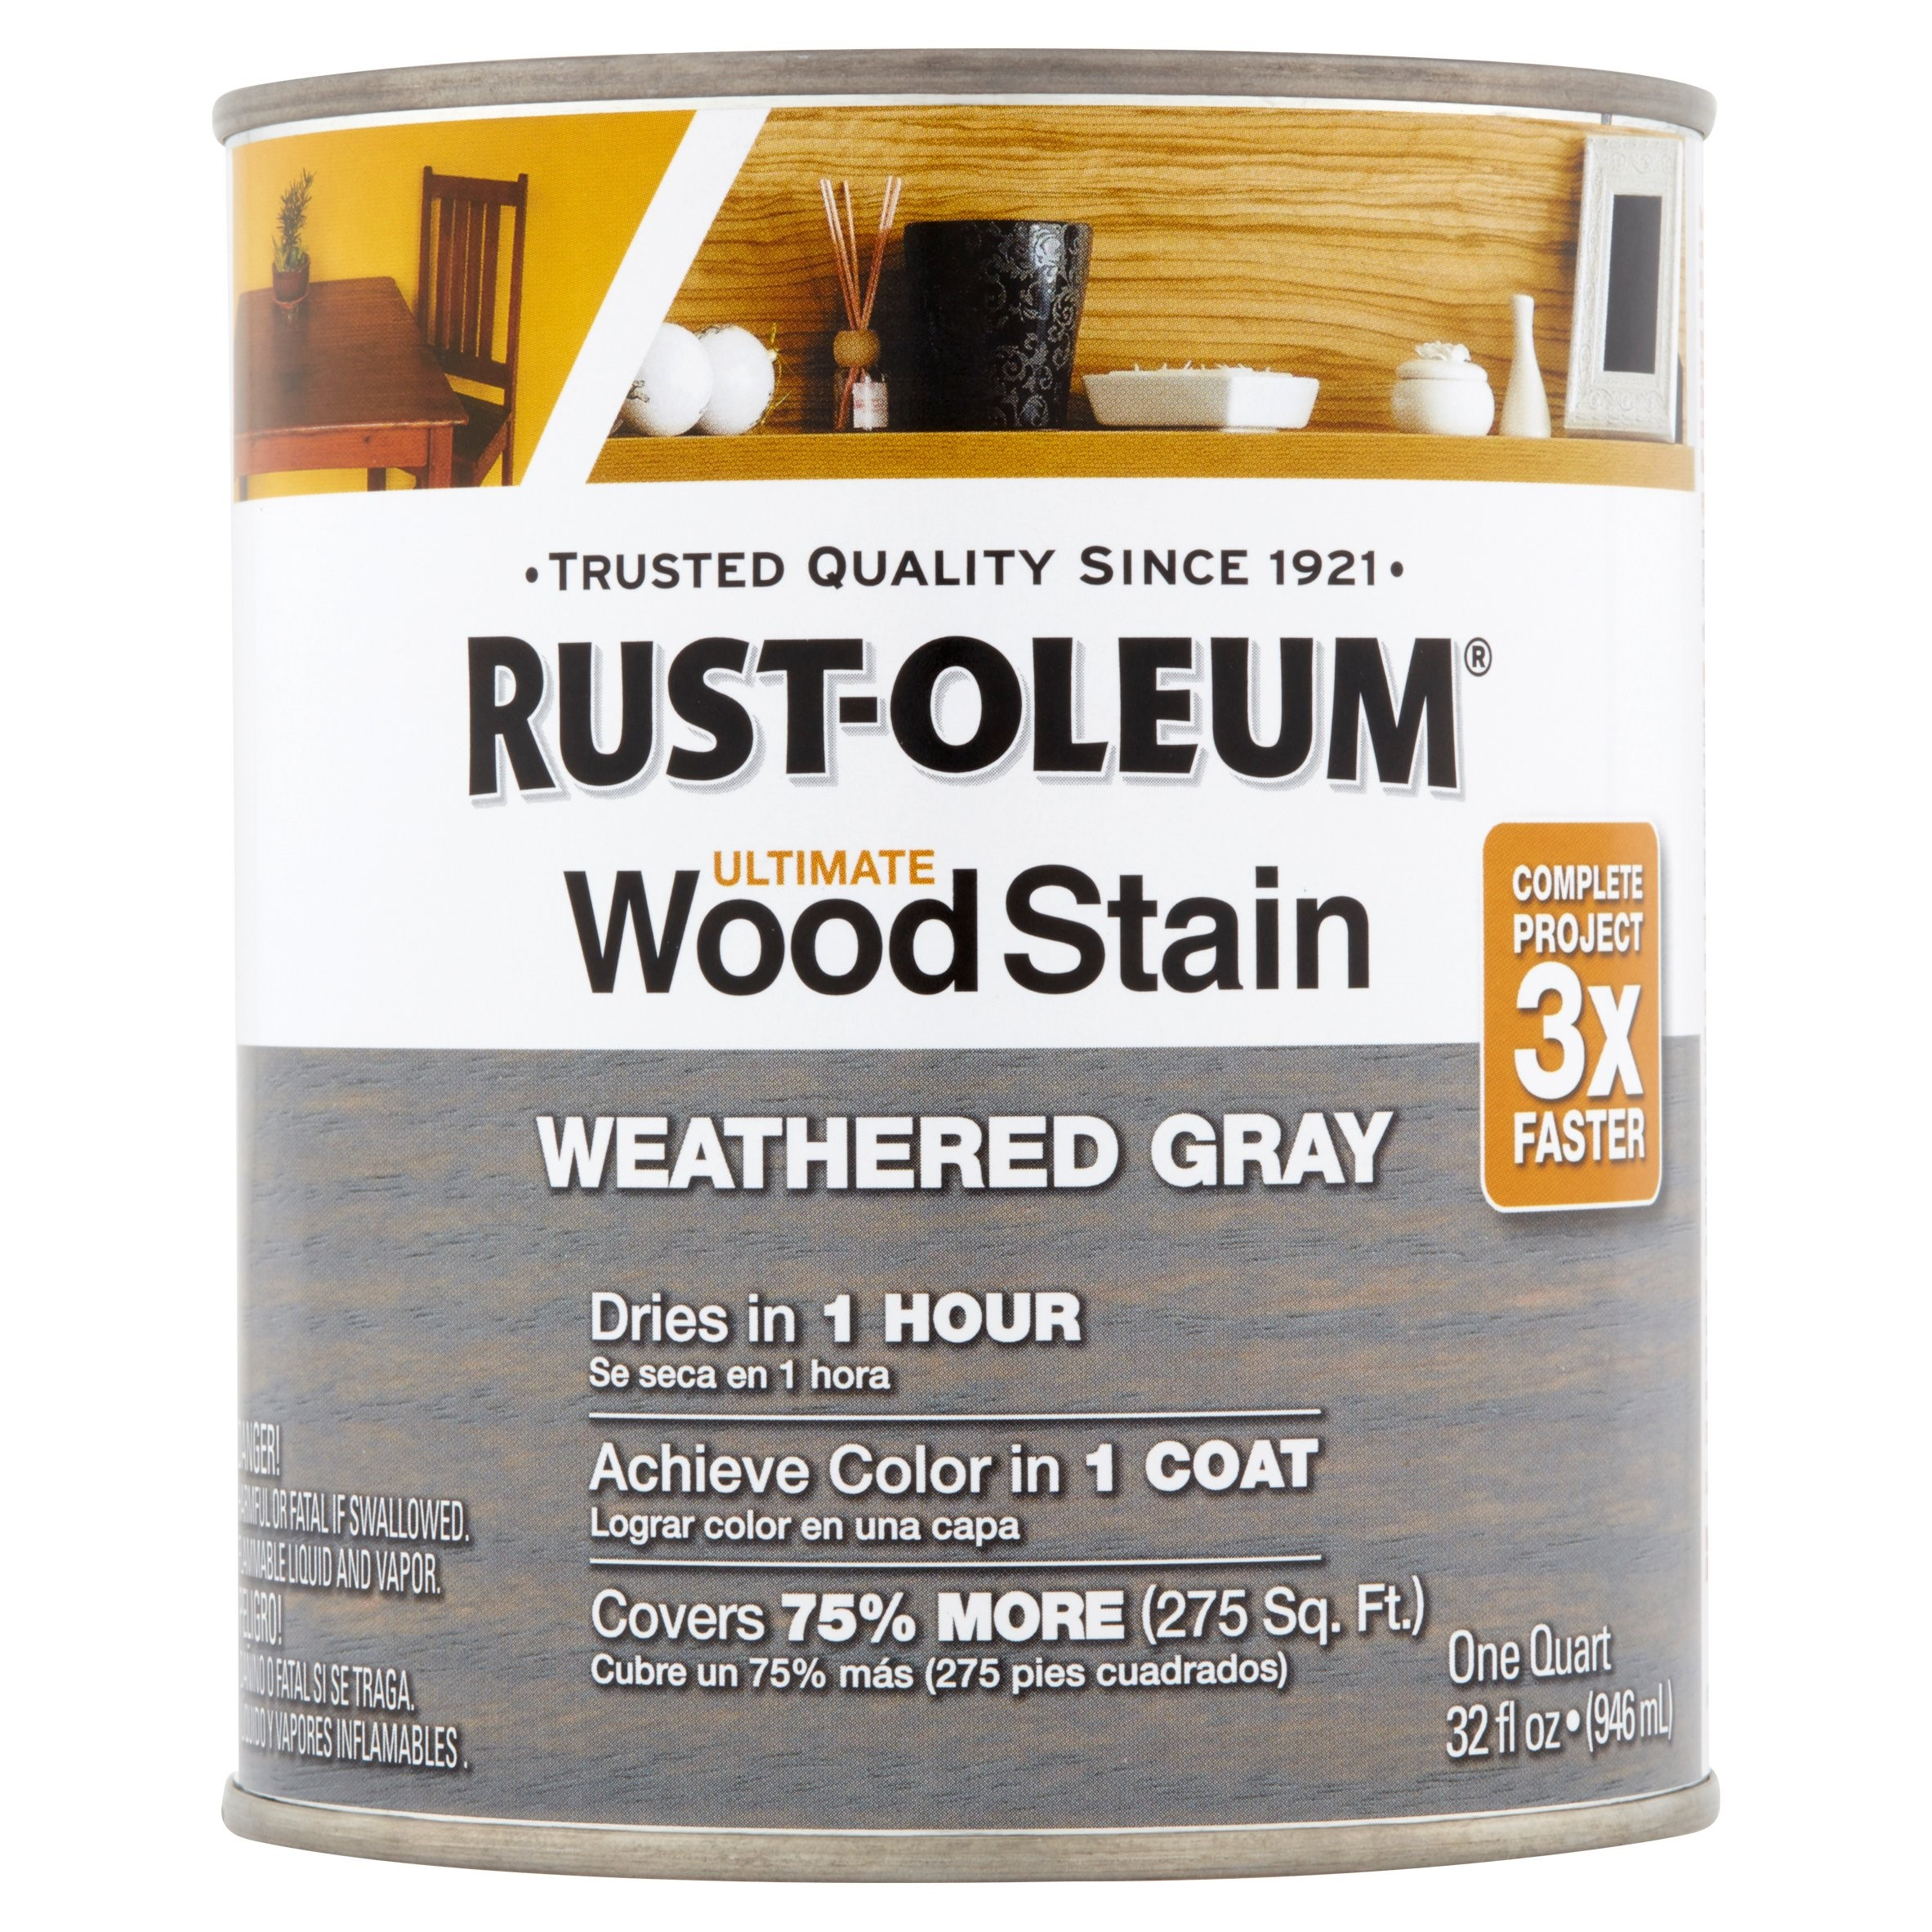 Rust-Oleum Weather Gray Ultimate Wood Stain, 32 fl oz